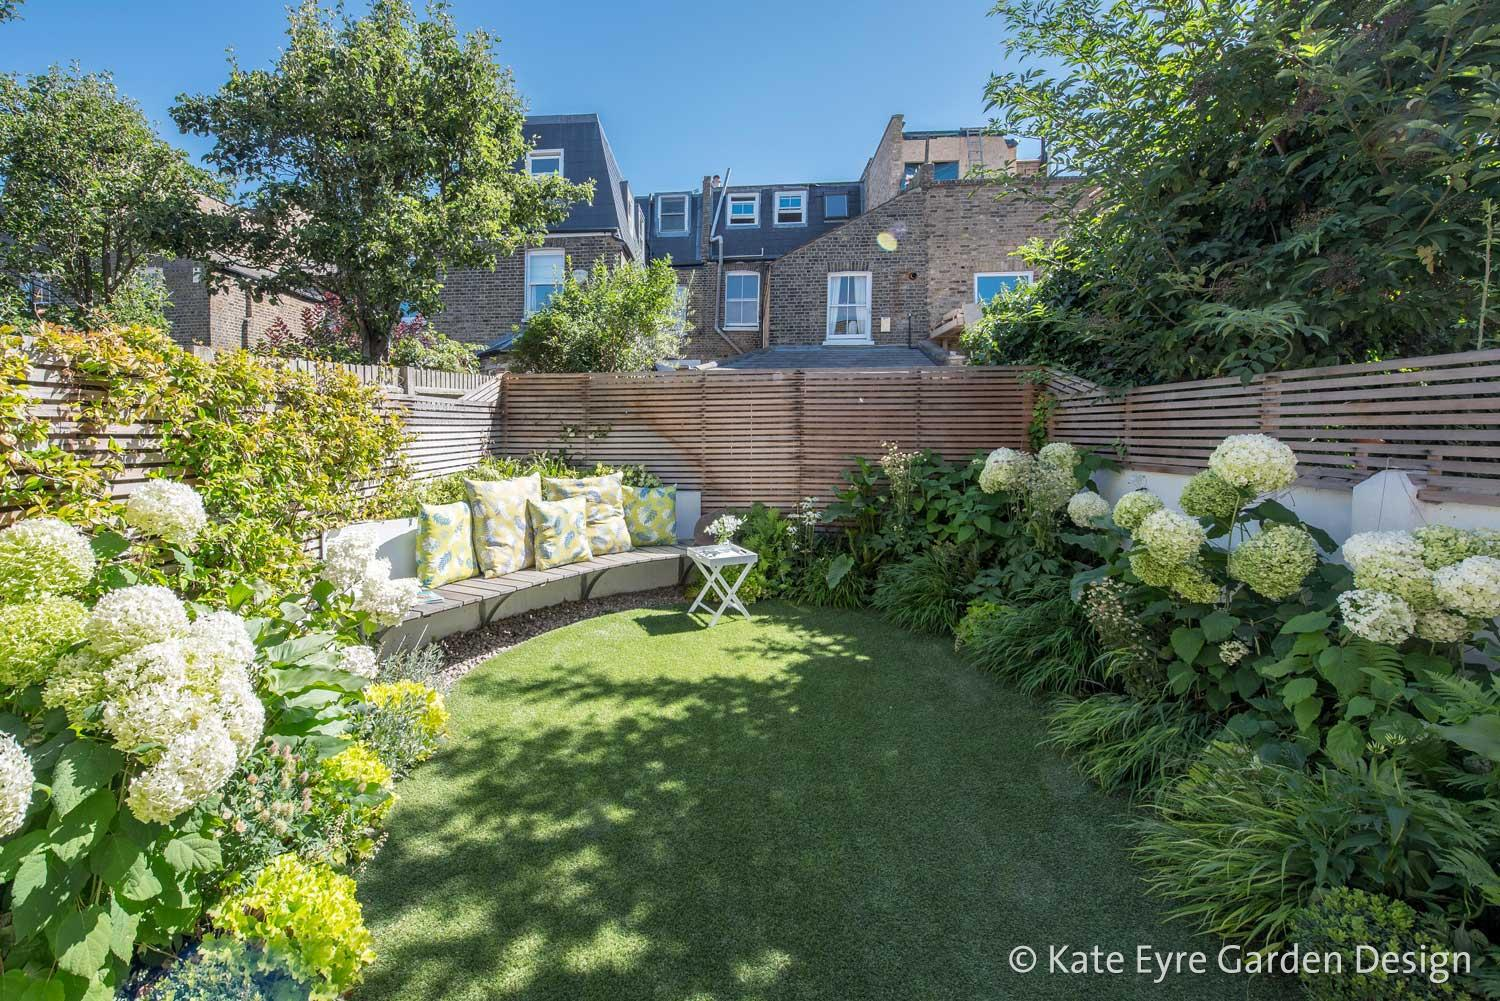 Kate eyre garden design clapham for Small rear garden designs